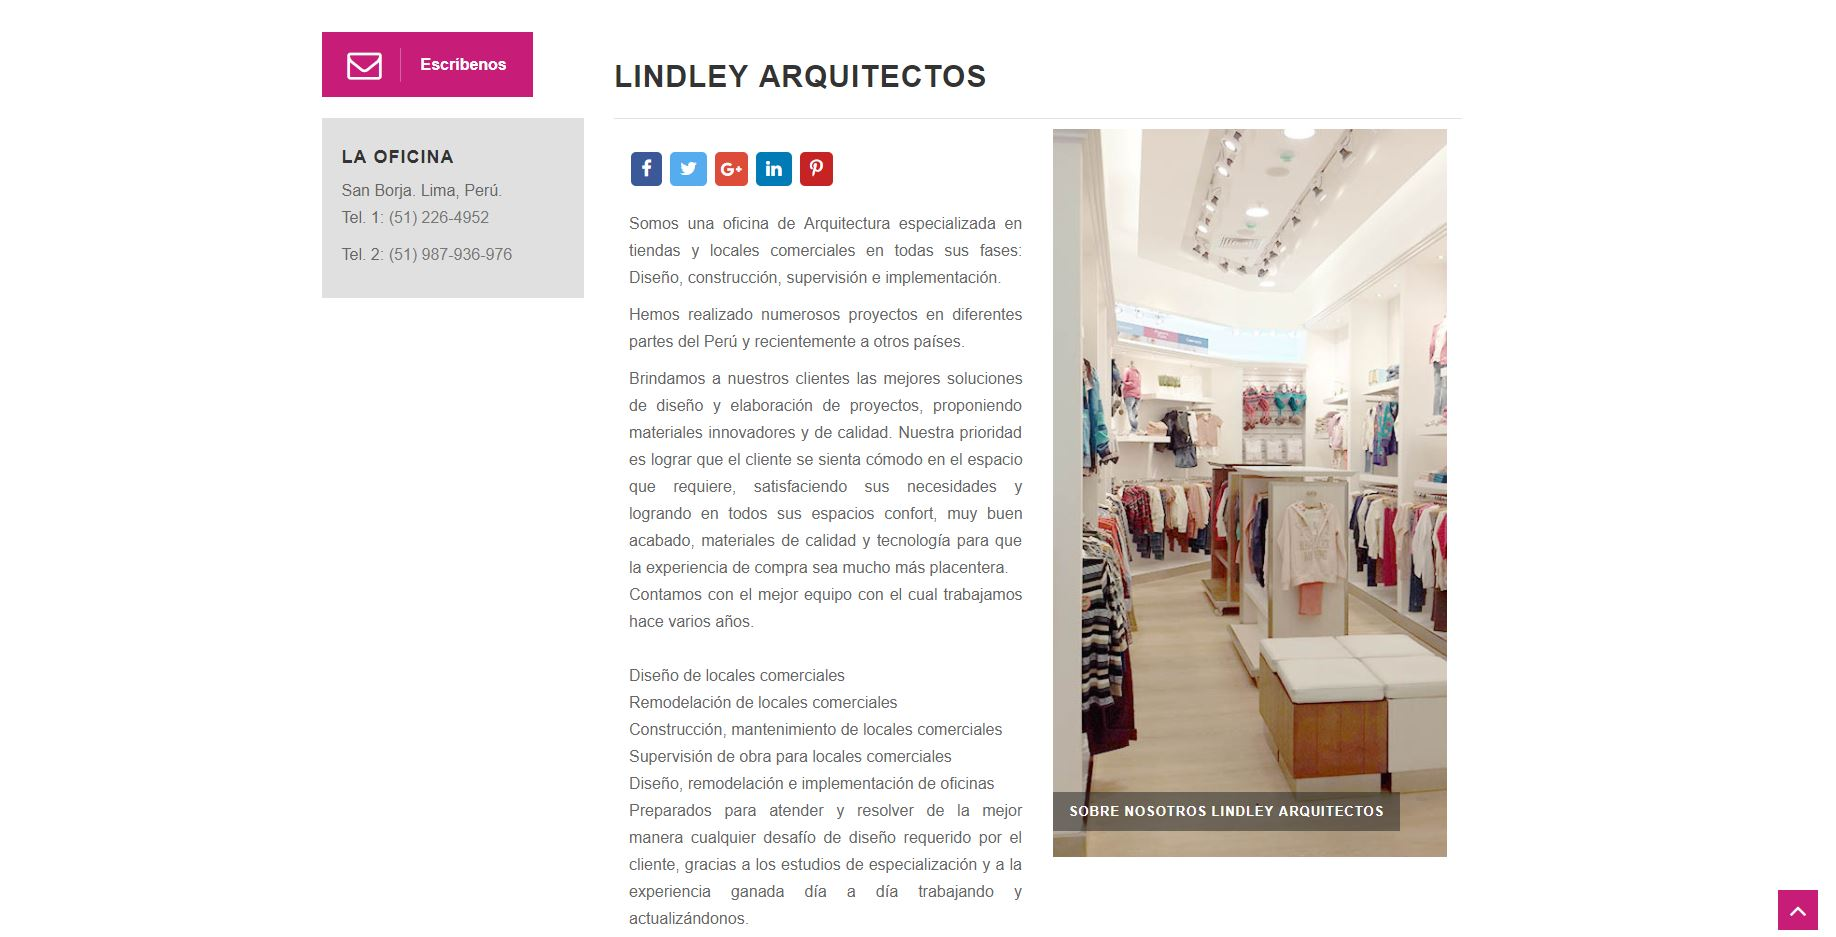 Outsourcing Digital a Lindley Arquitectos, Perú